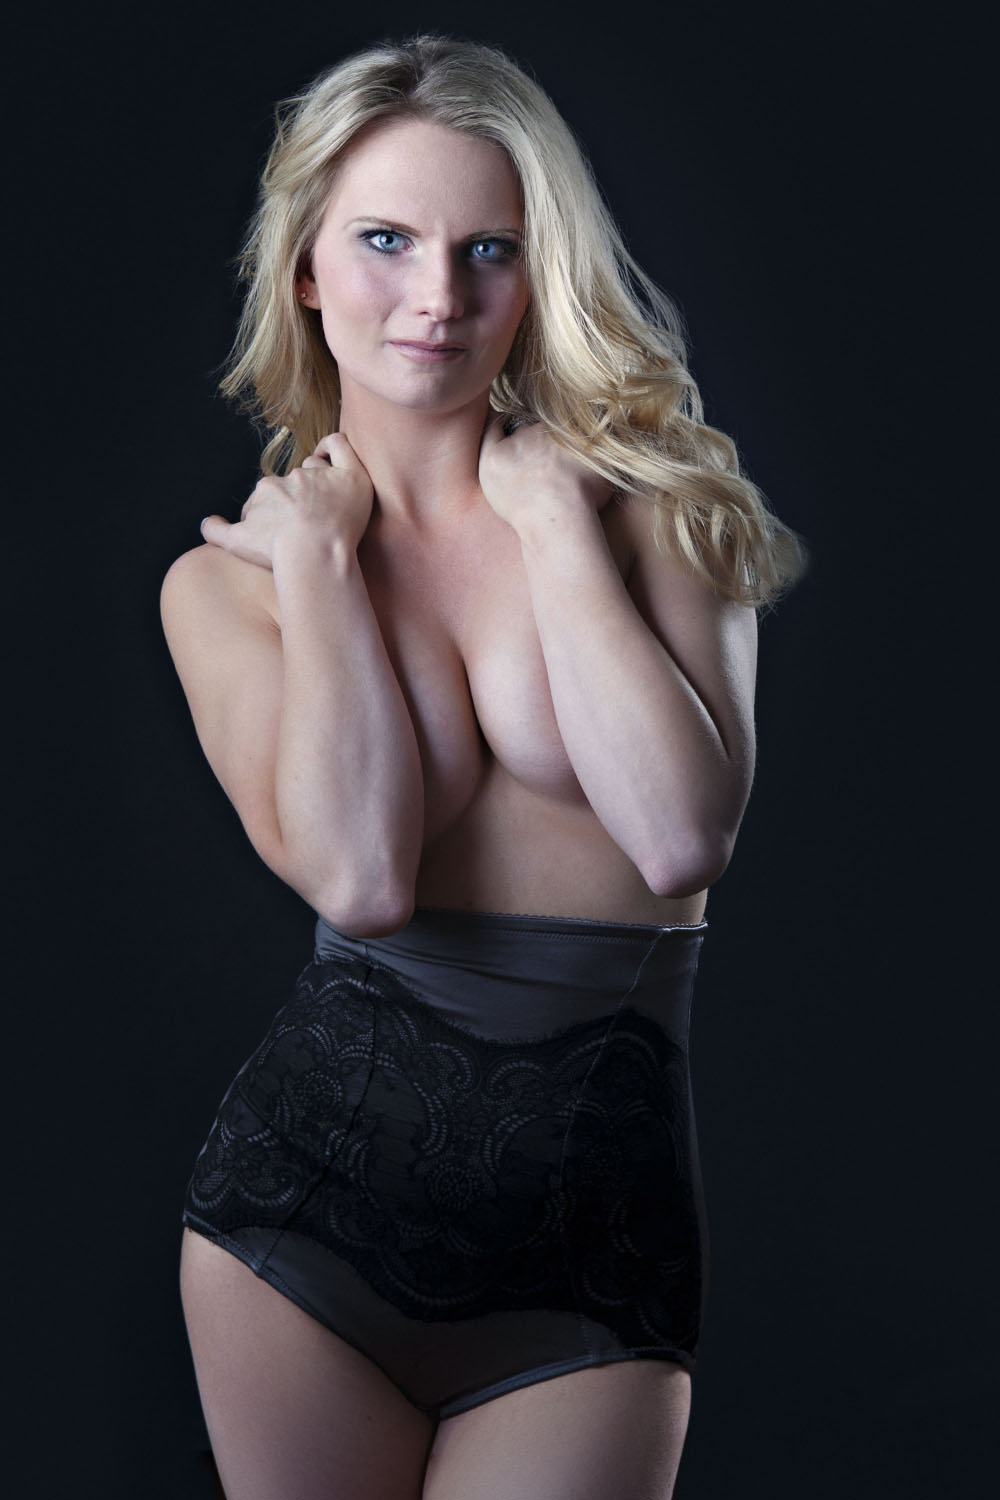 Sensual photo of a gorgeous blonde with hands in her neck showing cleavage for a boudoir photography session in Boston MA